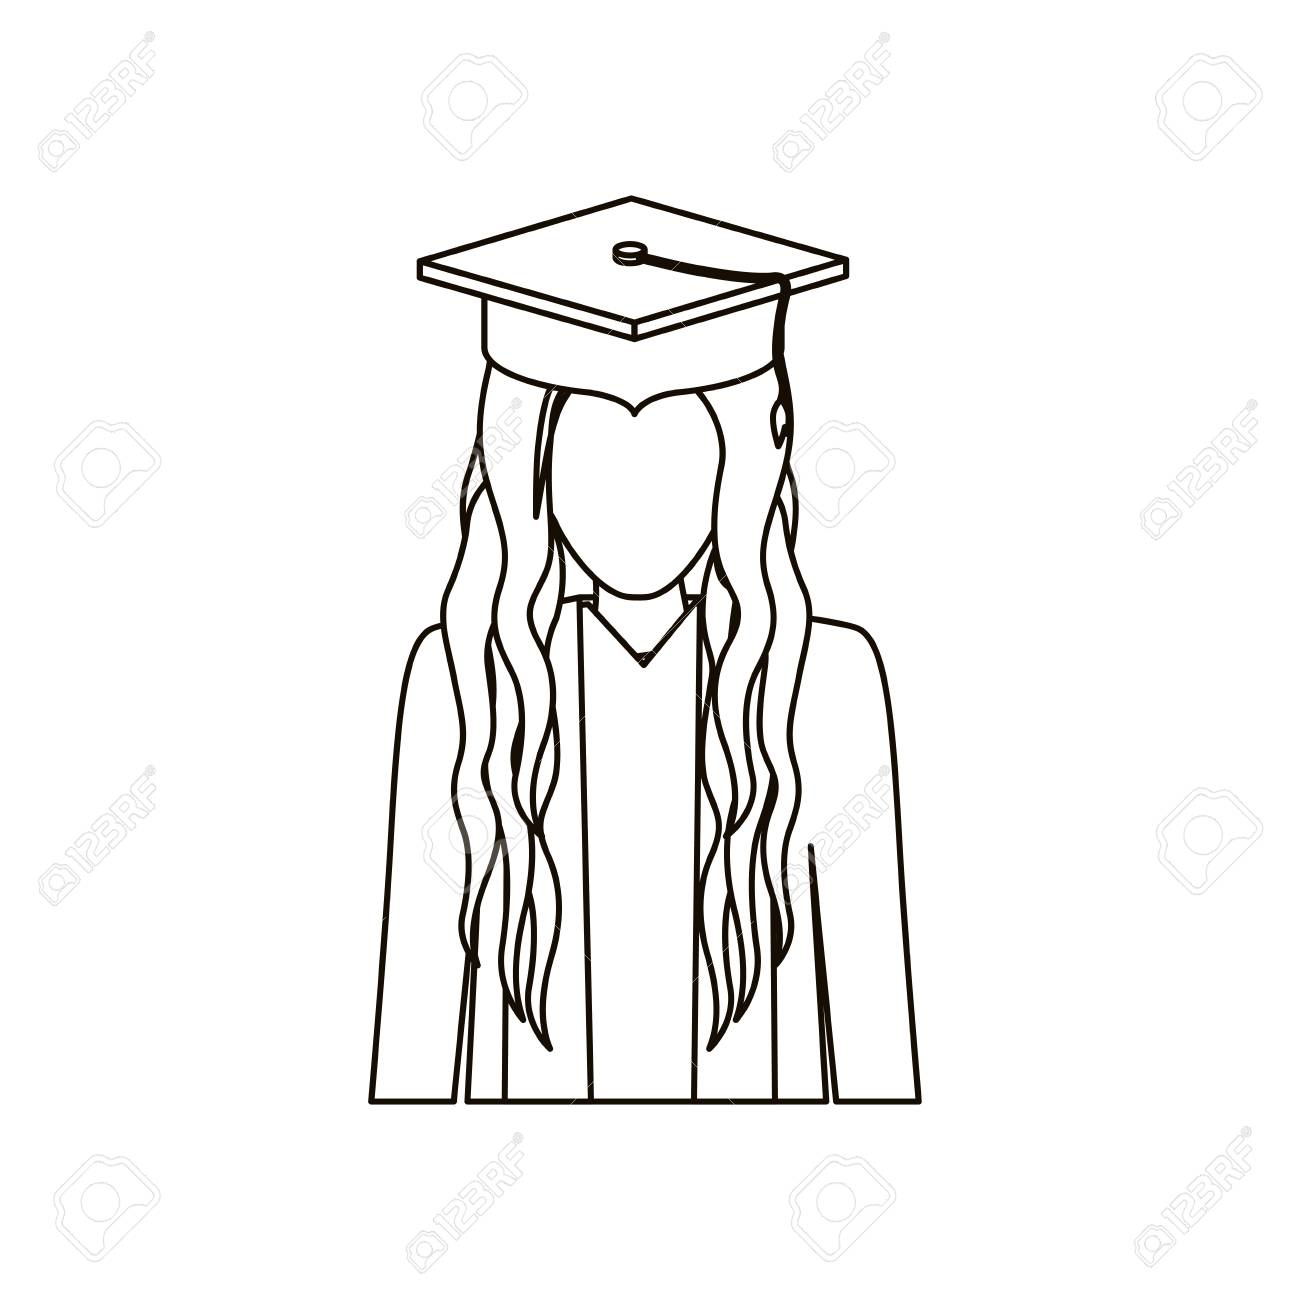 Girl with graduation cap icon  University education and school